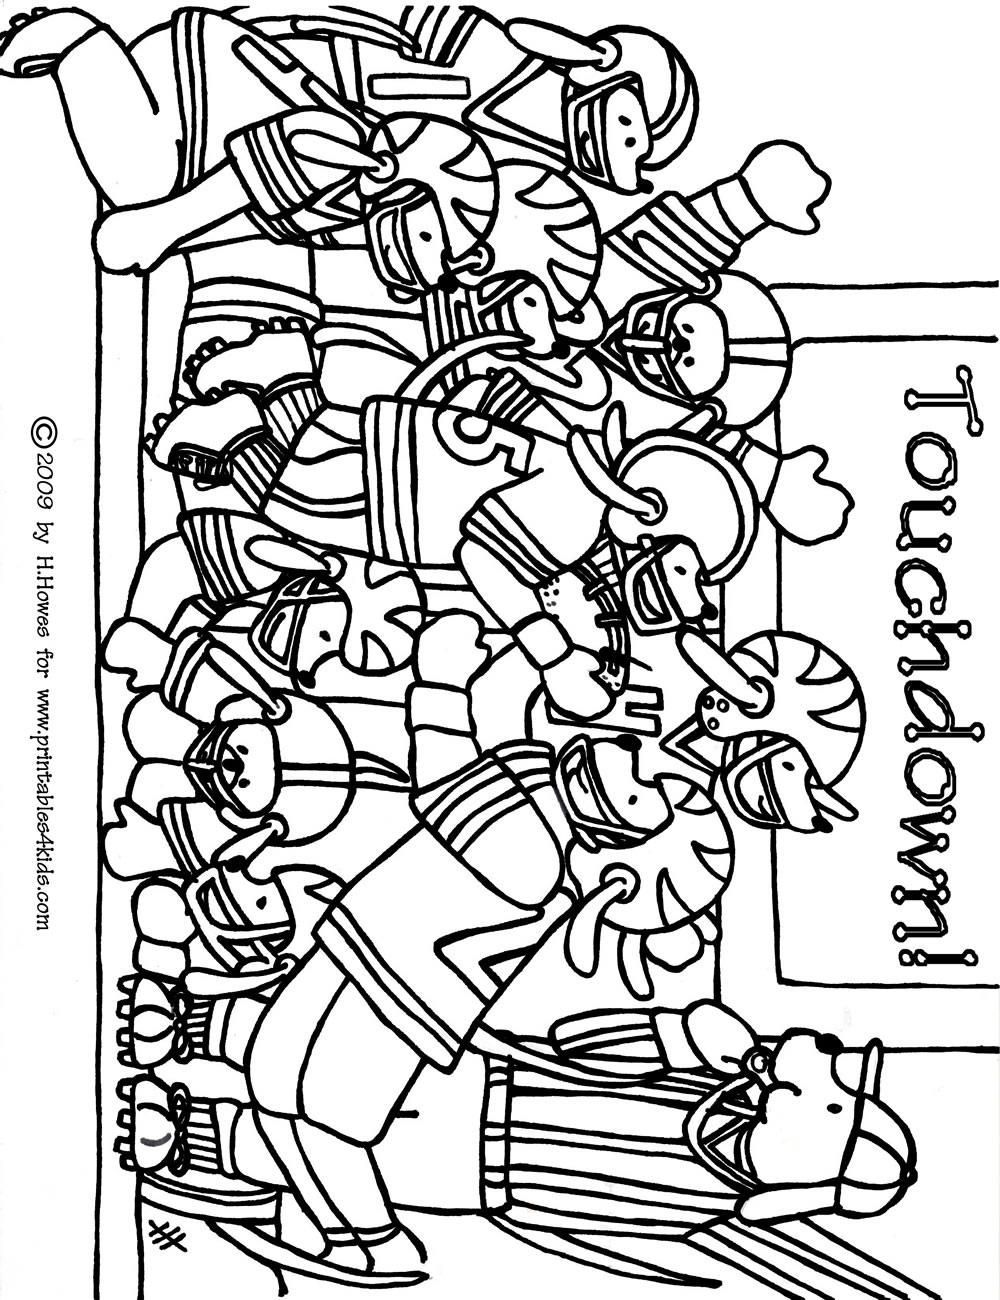 college coloring pages to print - photo#2